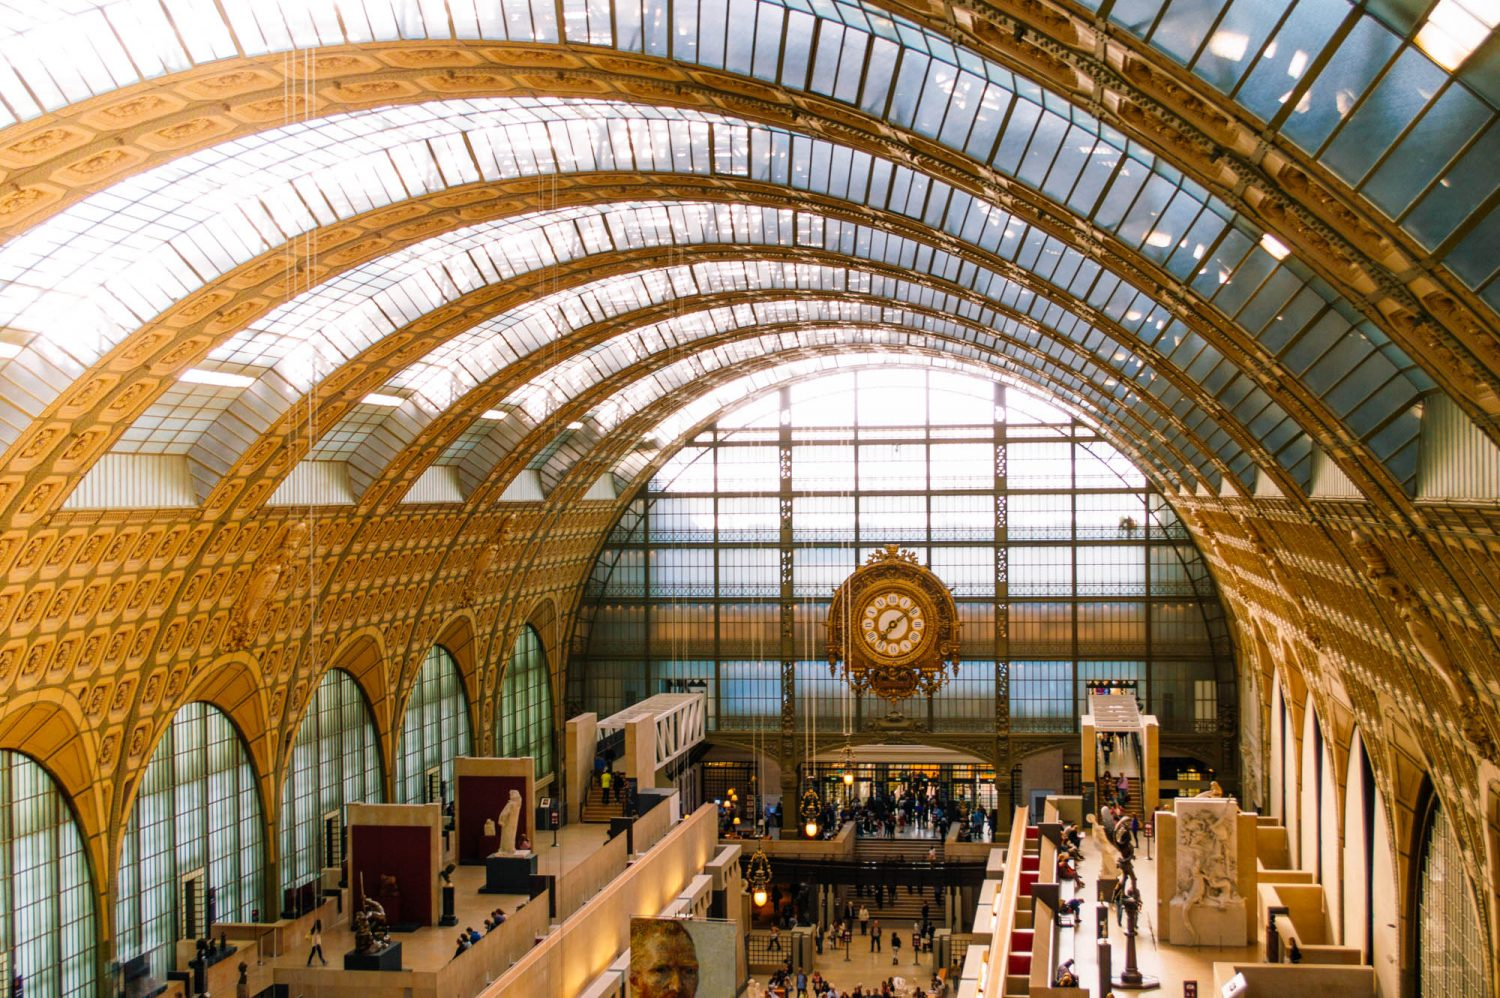 amazing list of free things to do in paris paris can be budget friendly - Paris Must See